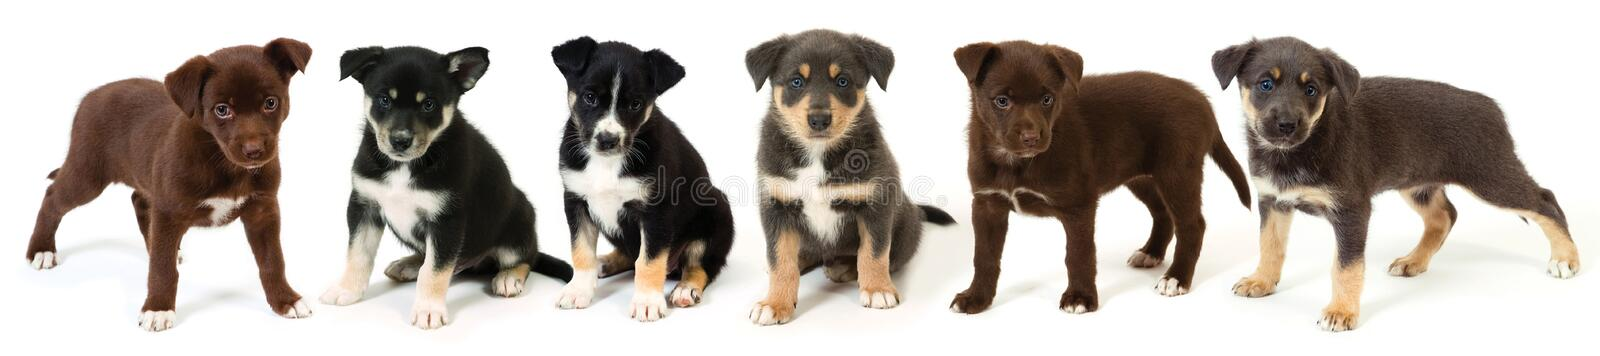 Six Puppies Side by Side stock image